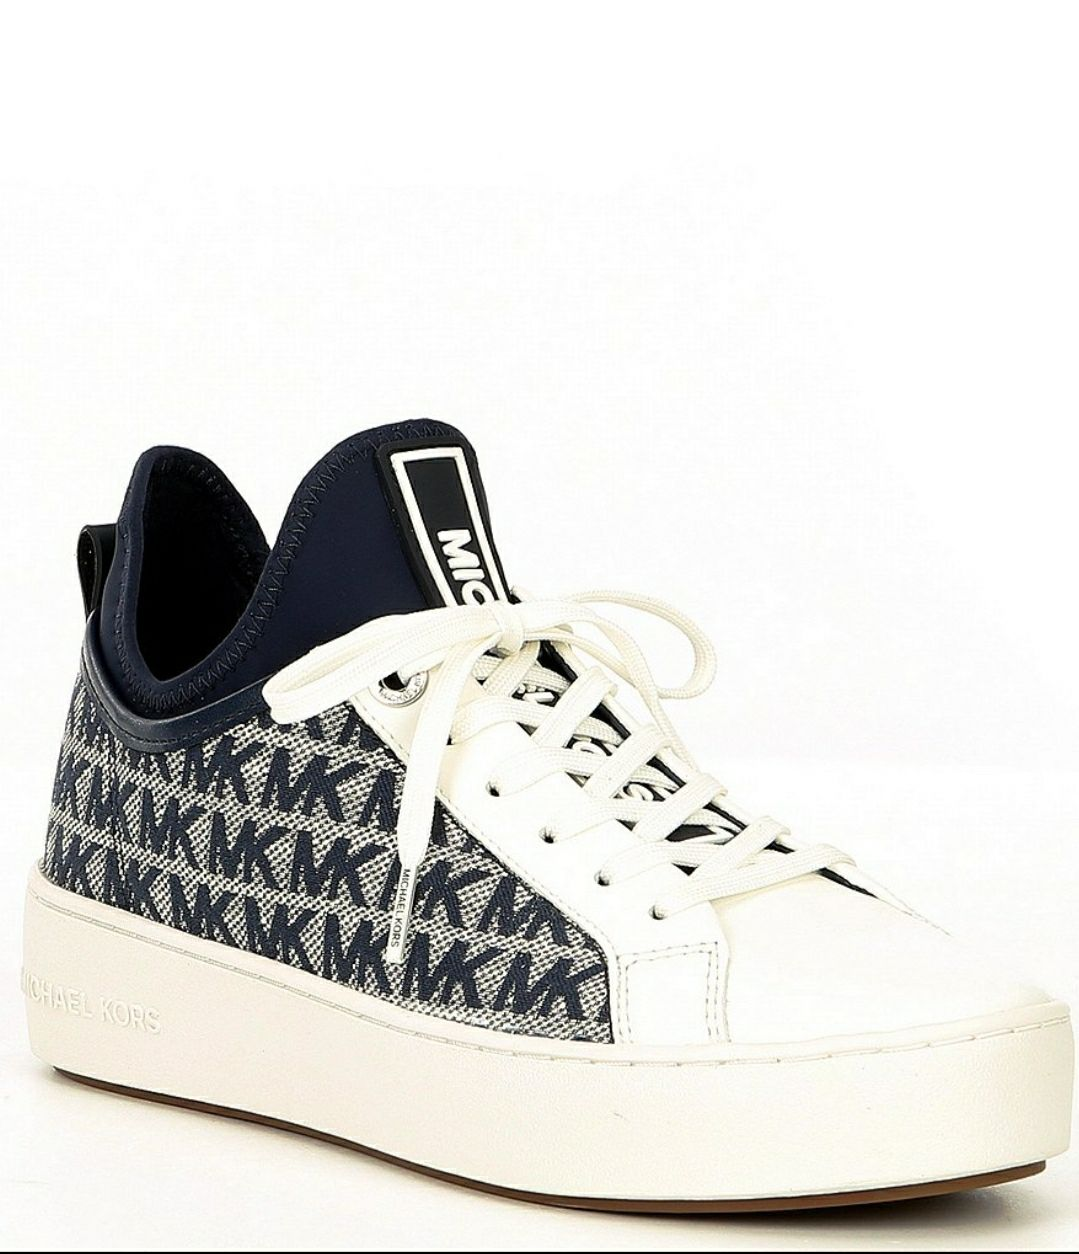 Michael Kors Sneakers size 8.5 New